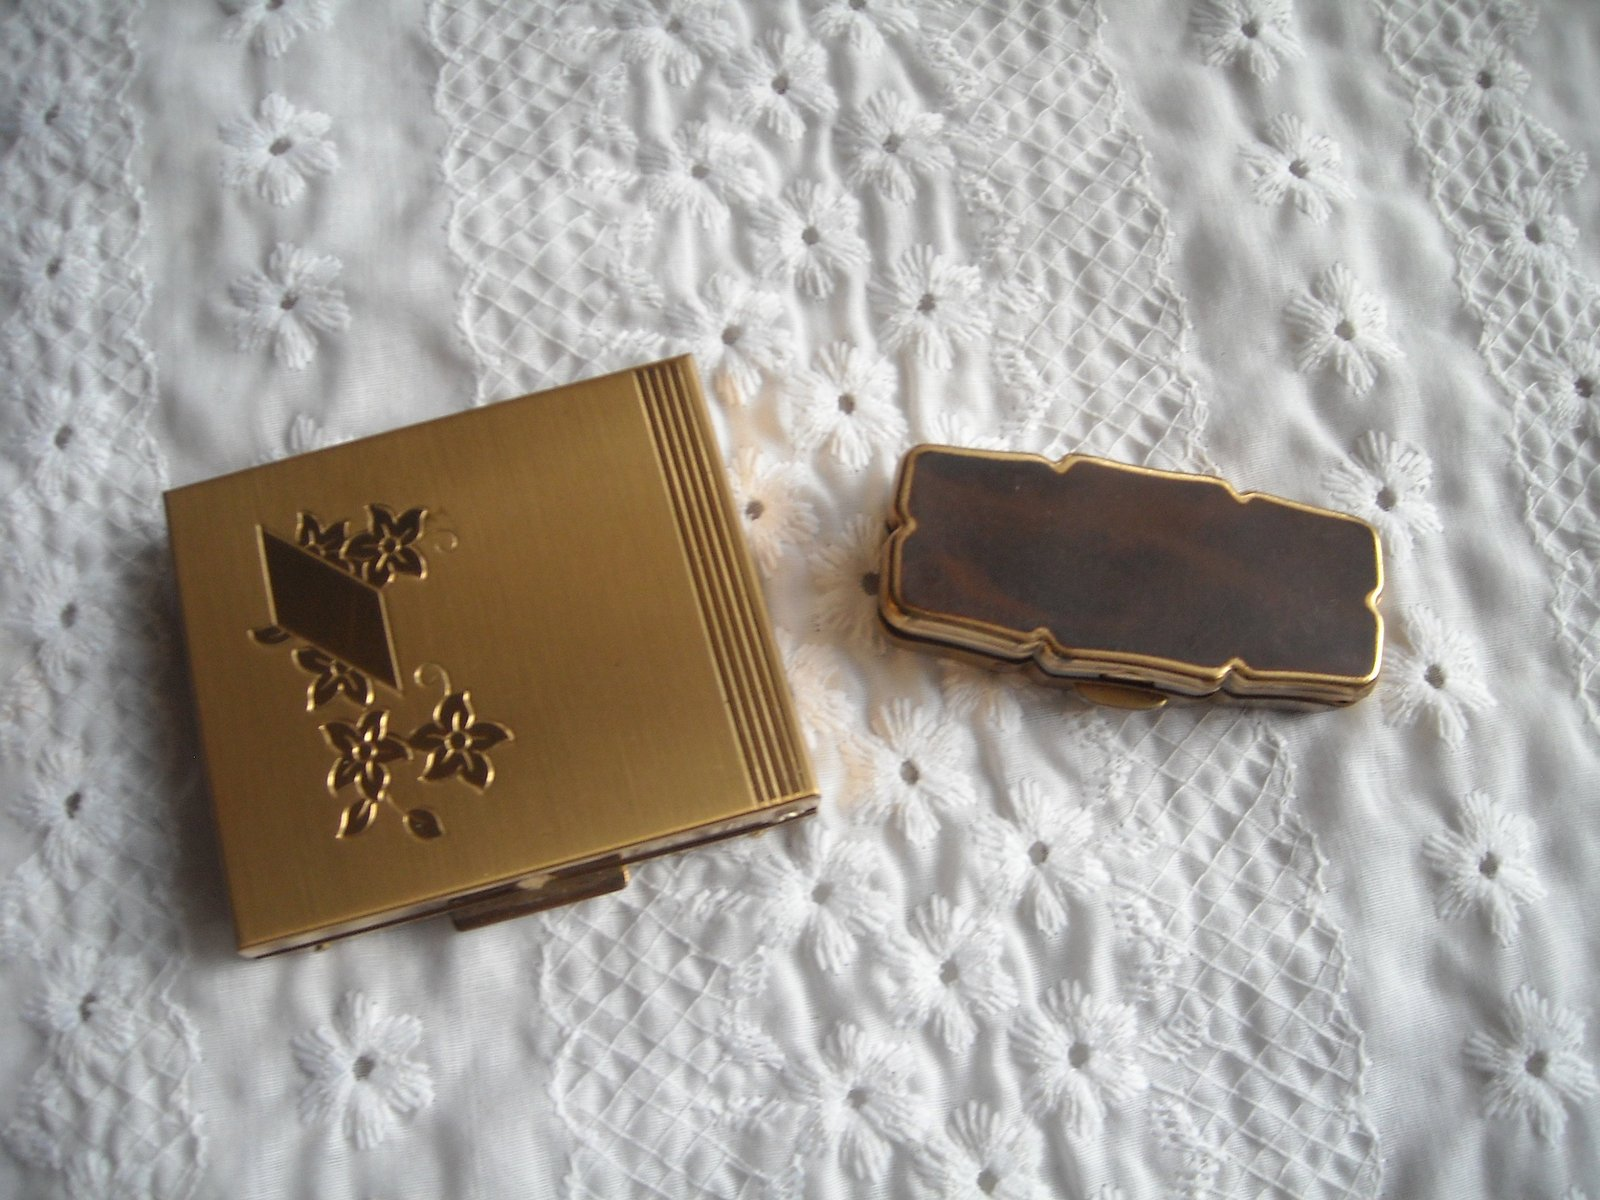 Vintage Stratton Rouge Compact Brown Top & Powder Compact USA Both Gold Tone 2